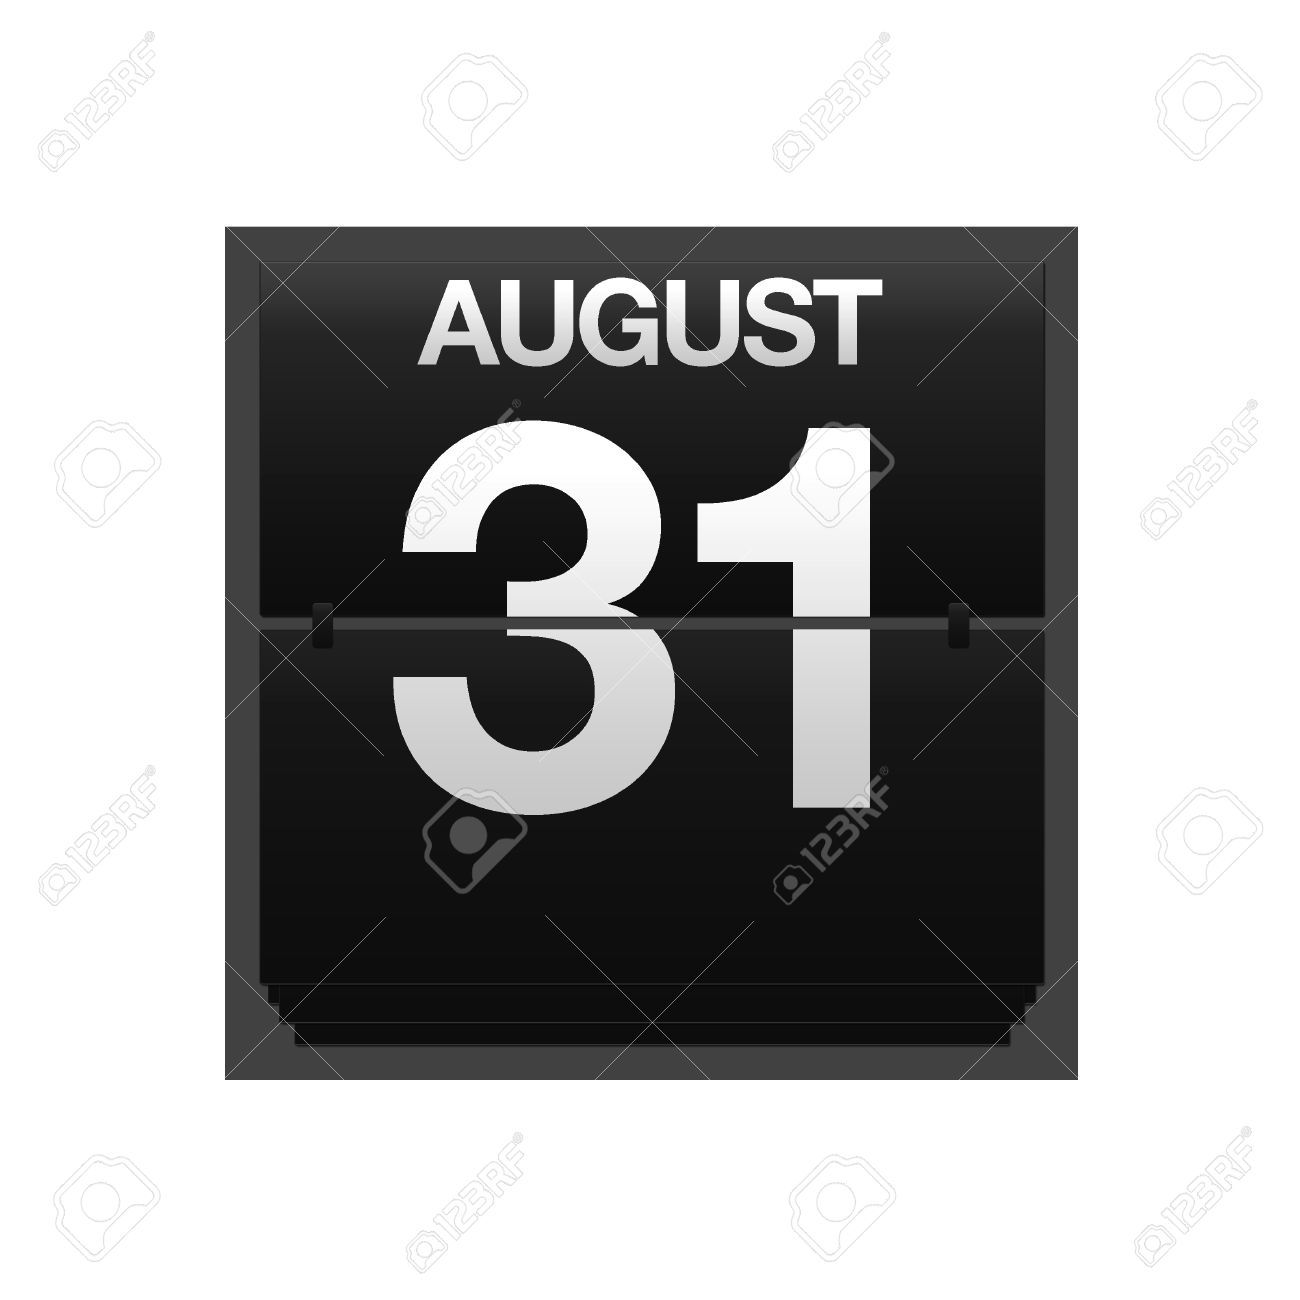 August 31st calendar clipart. Illustration with a counter